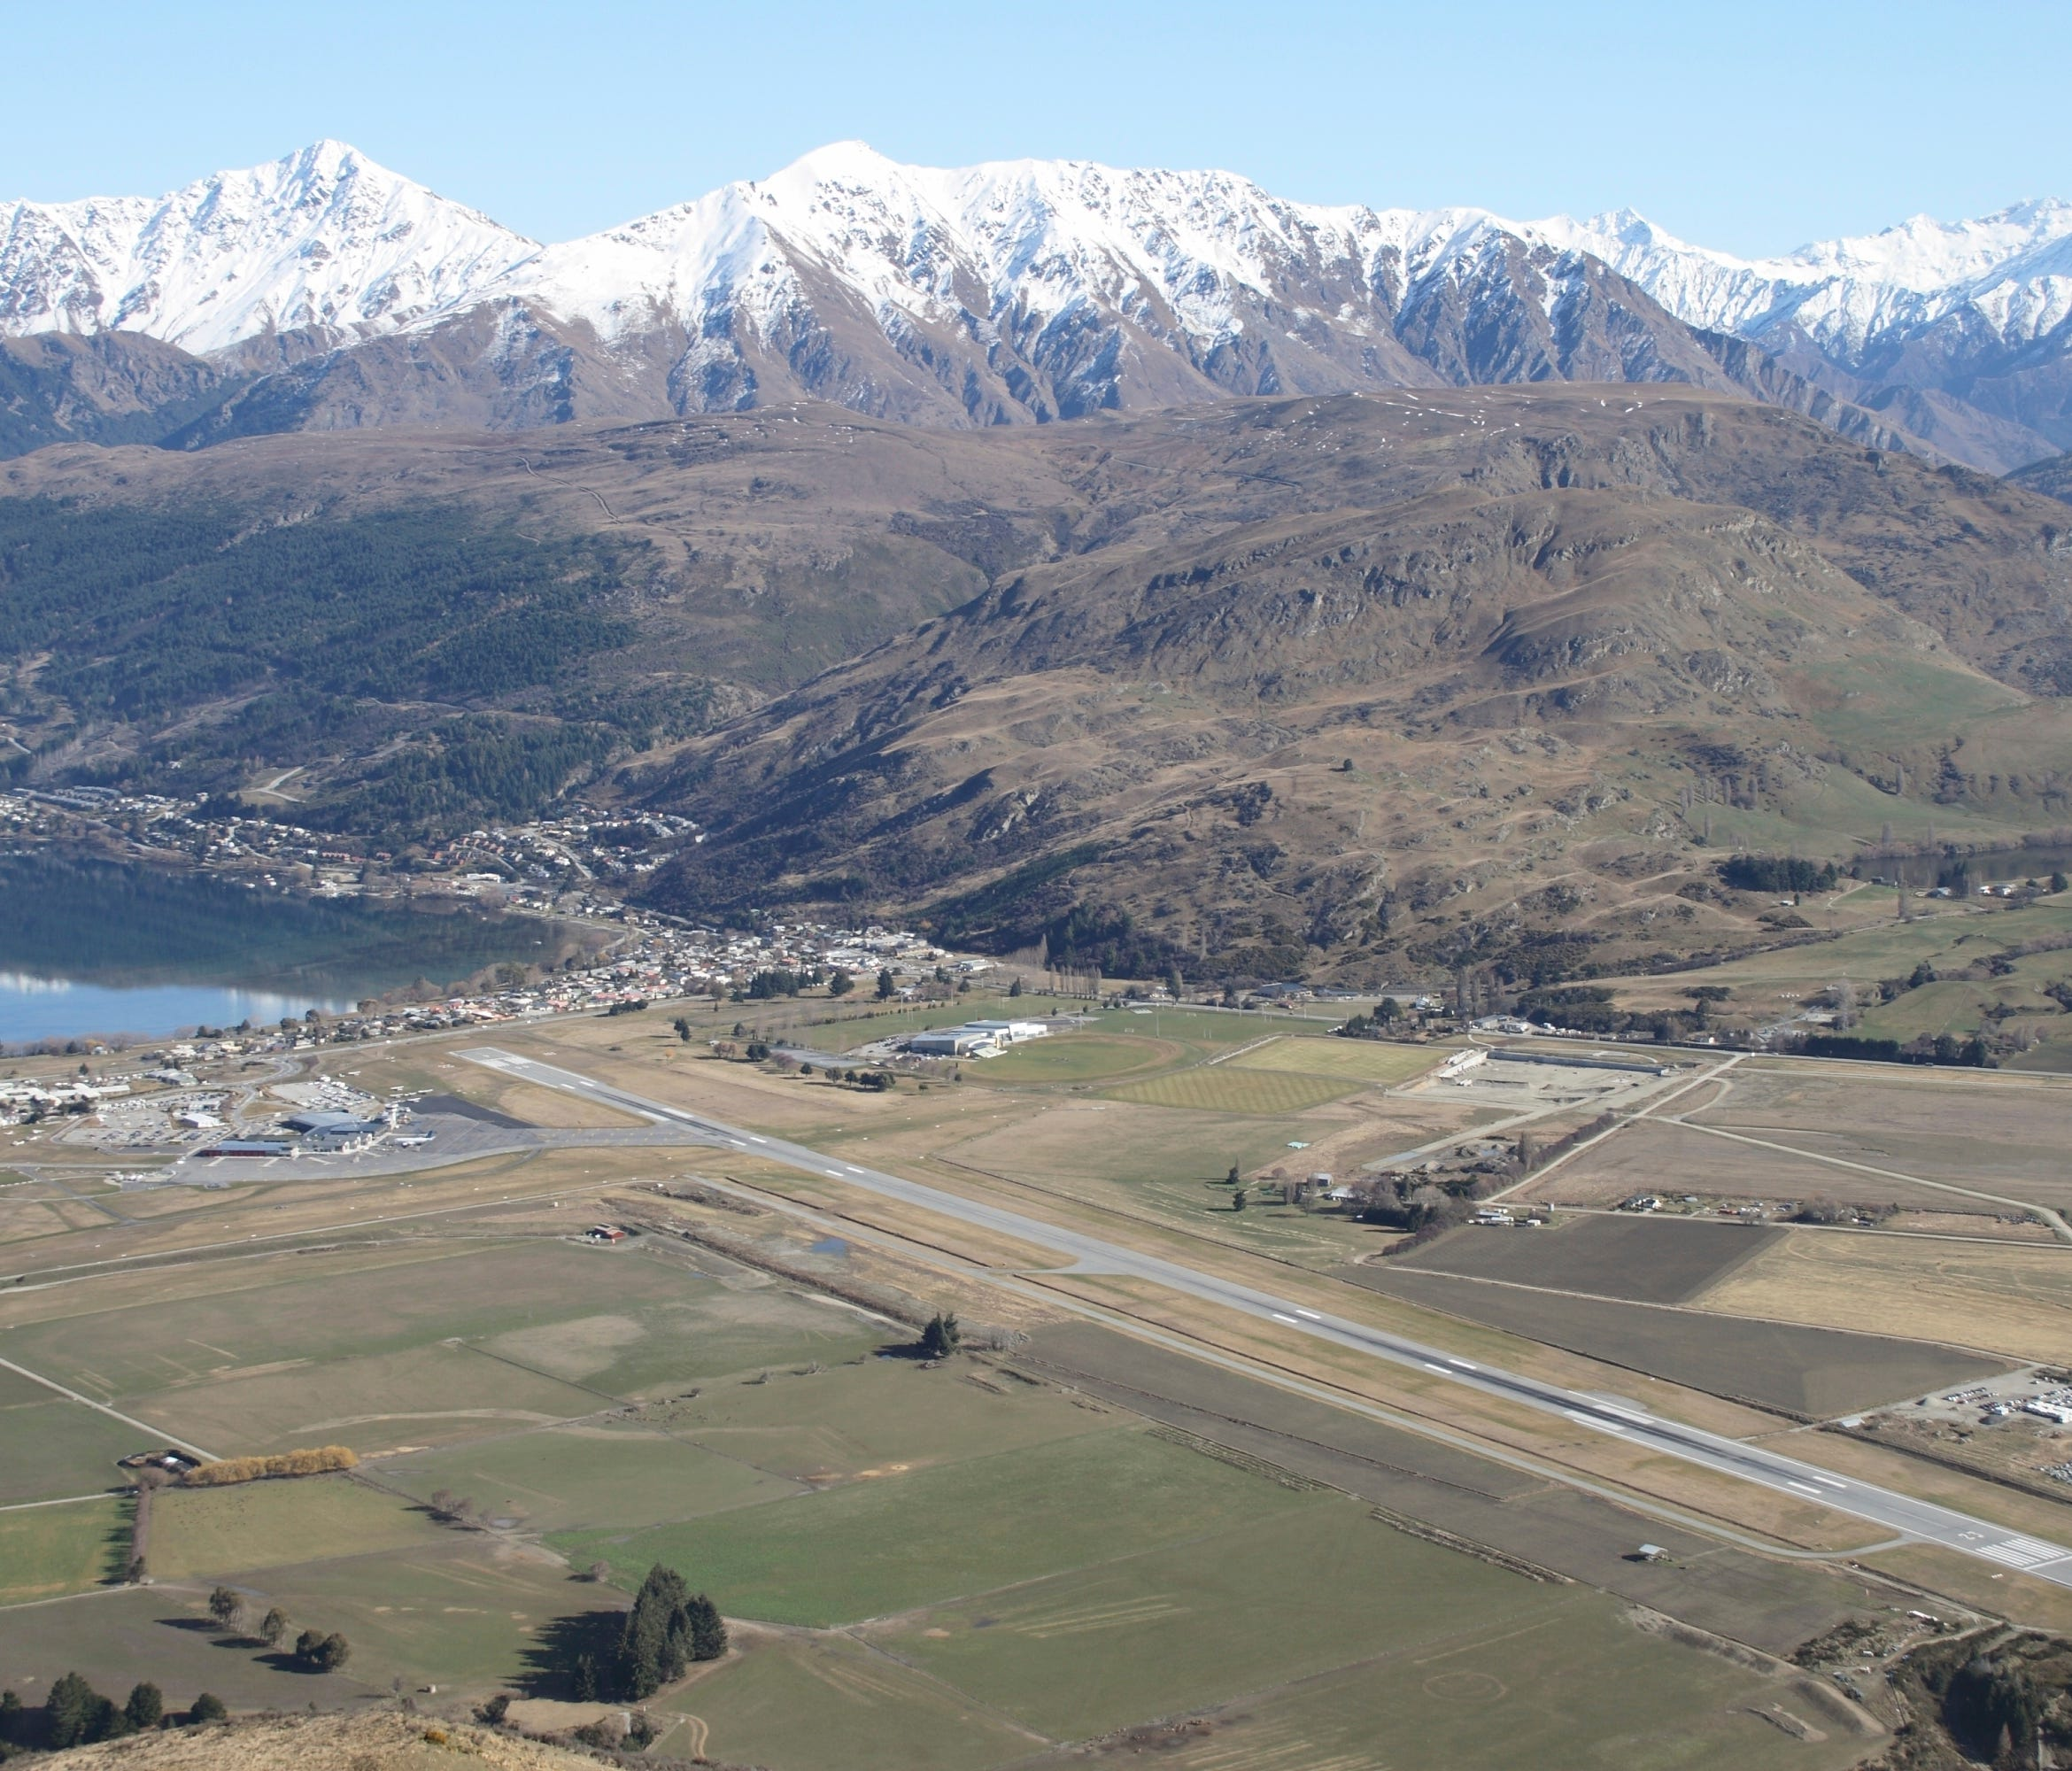 Improvements in aviation technology have made Controlled Flight Into Terrain accidents, such as striking mountains near airports, an increasingly rare occurrence.